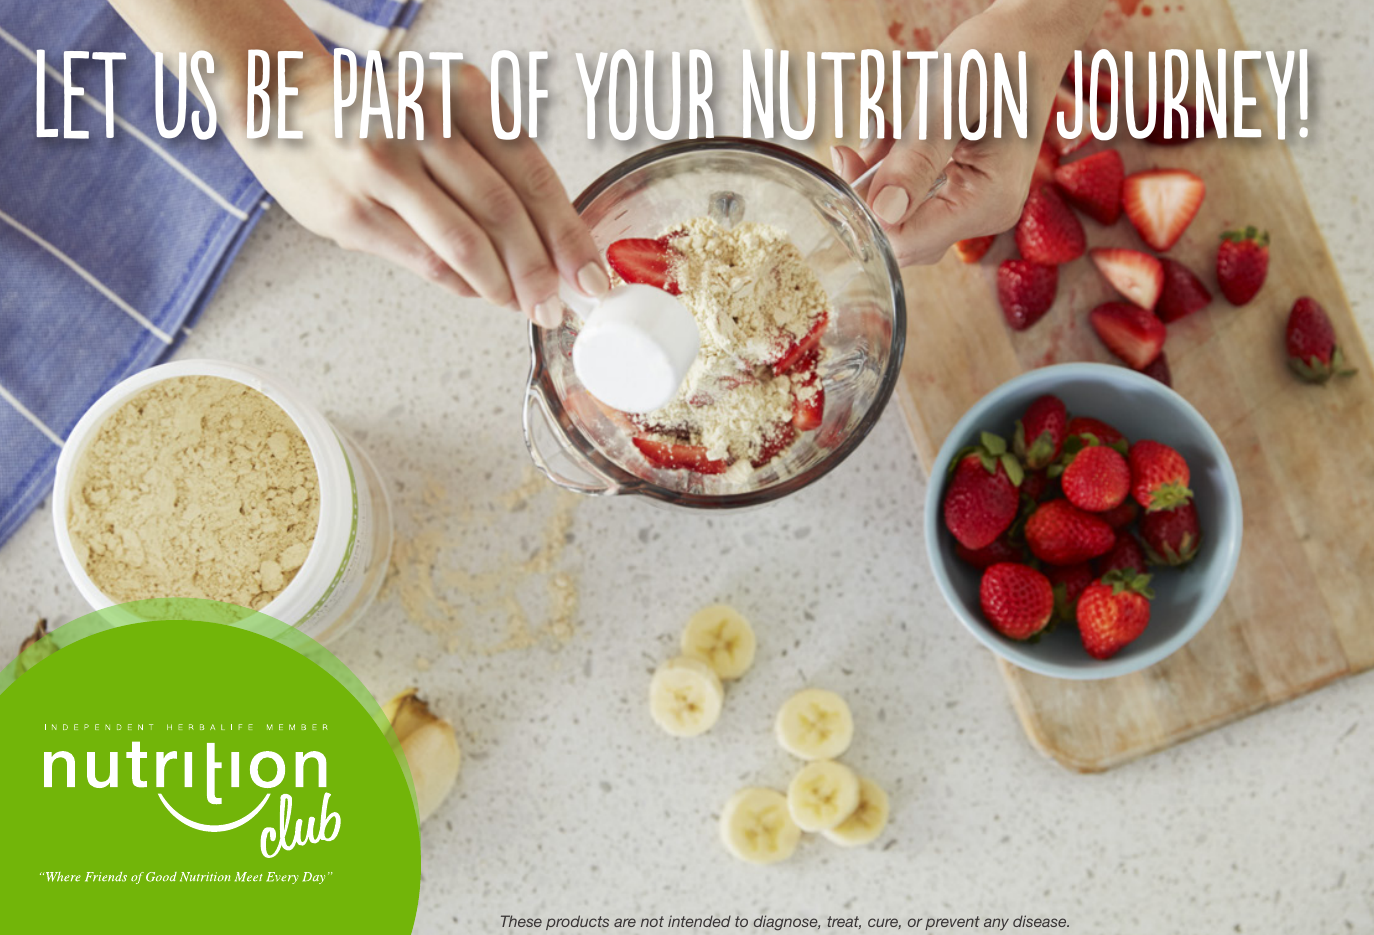 Let Us be Part of Your Nutrition Journey